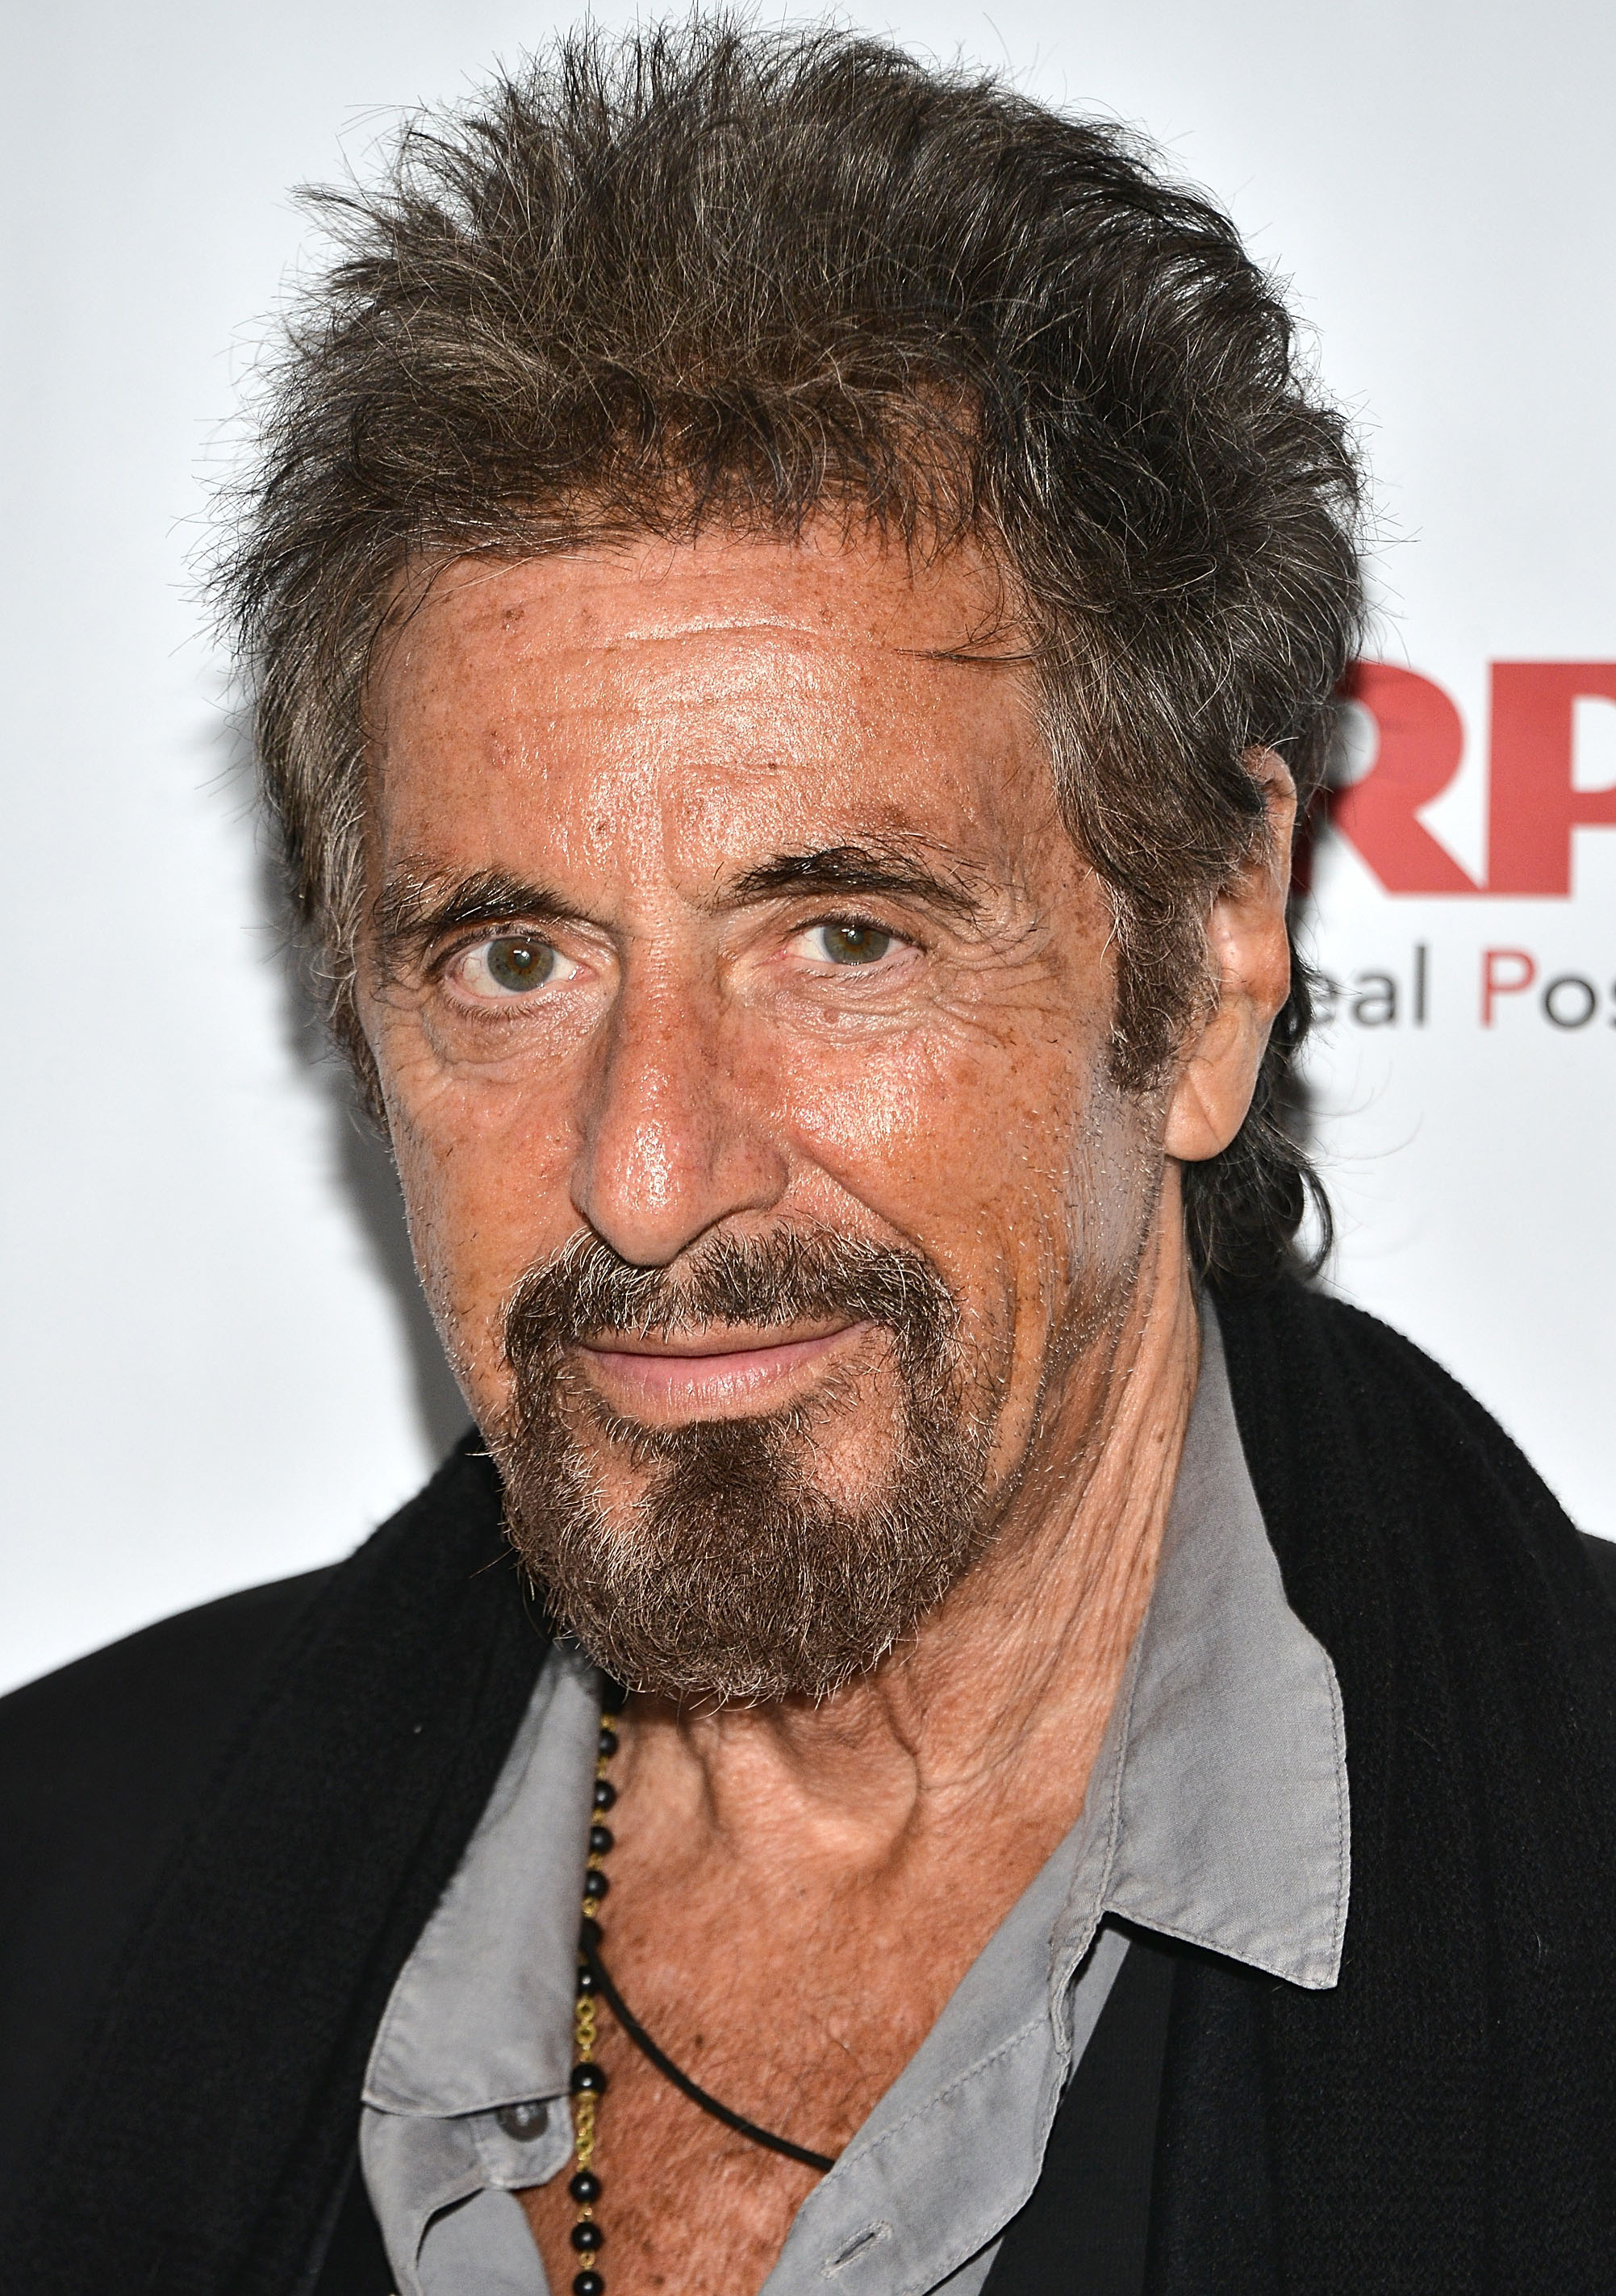 Al Pacino On His Upcoming 75th Birthday Age Is Just A